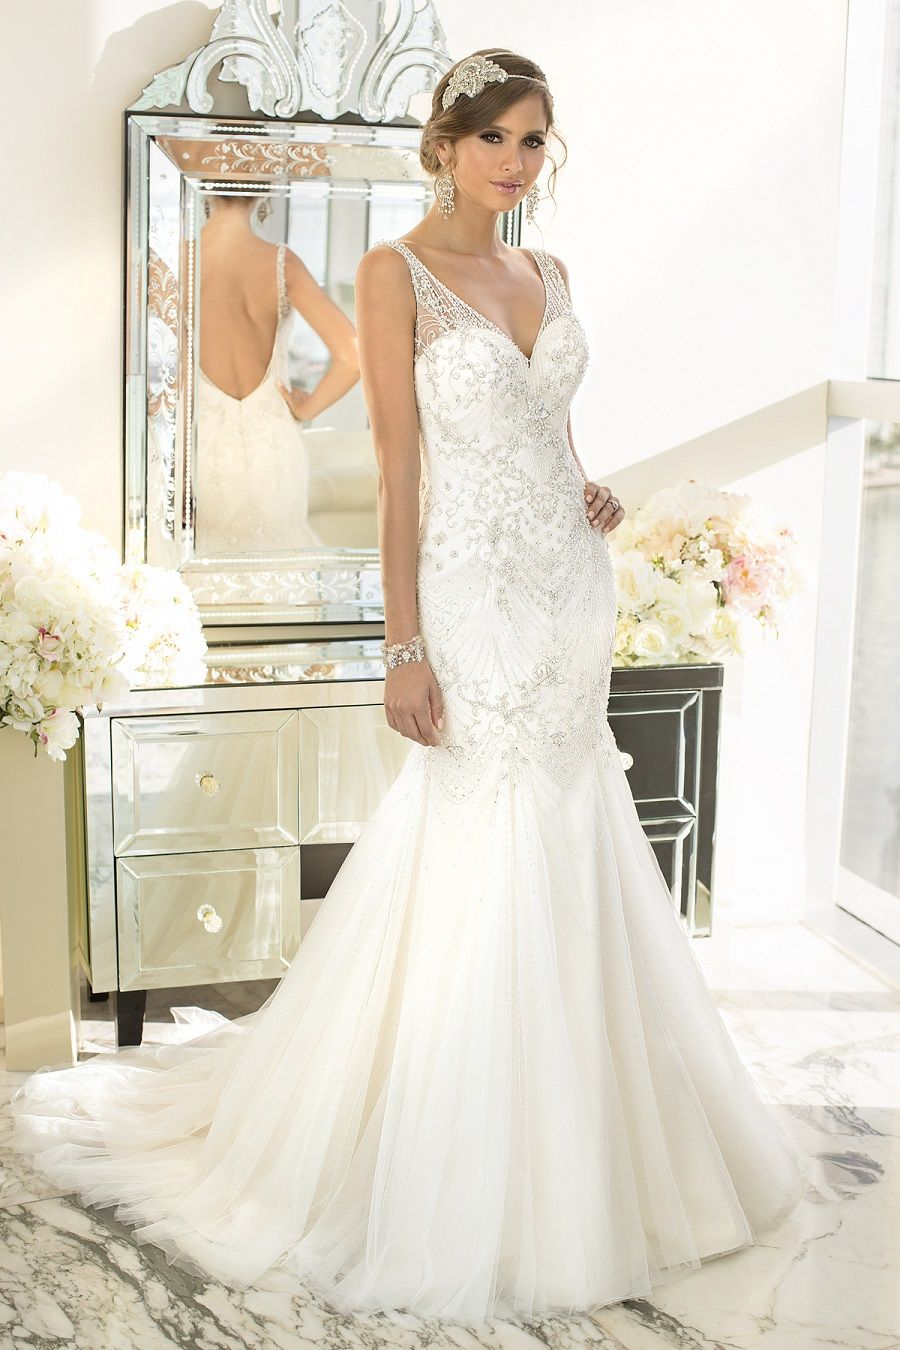 This is seriously so gorgeous! It looks like a Great Gatsby Gown ...